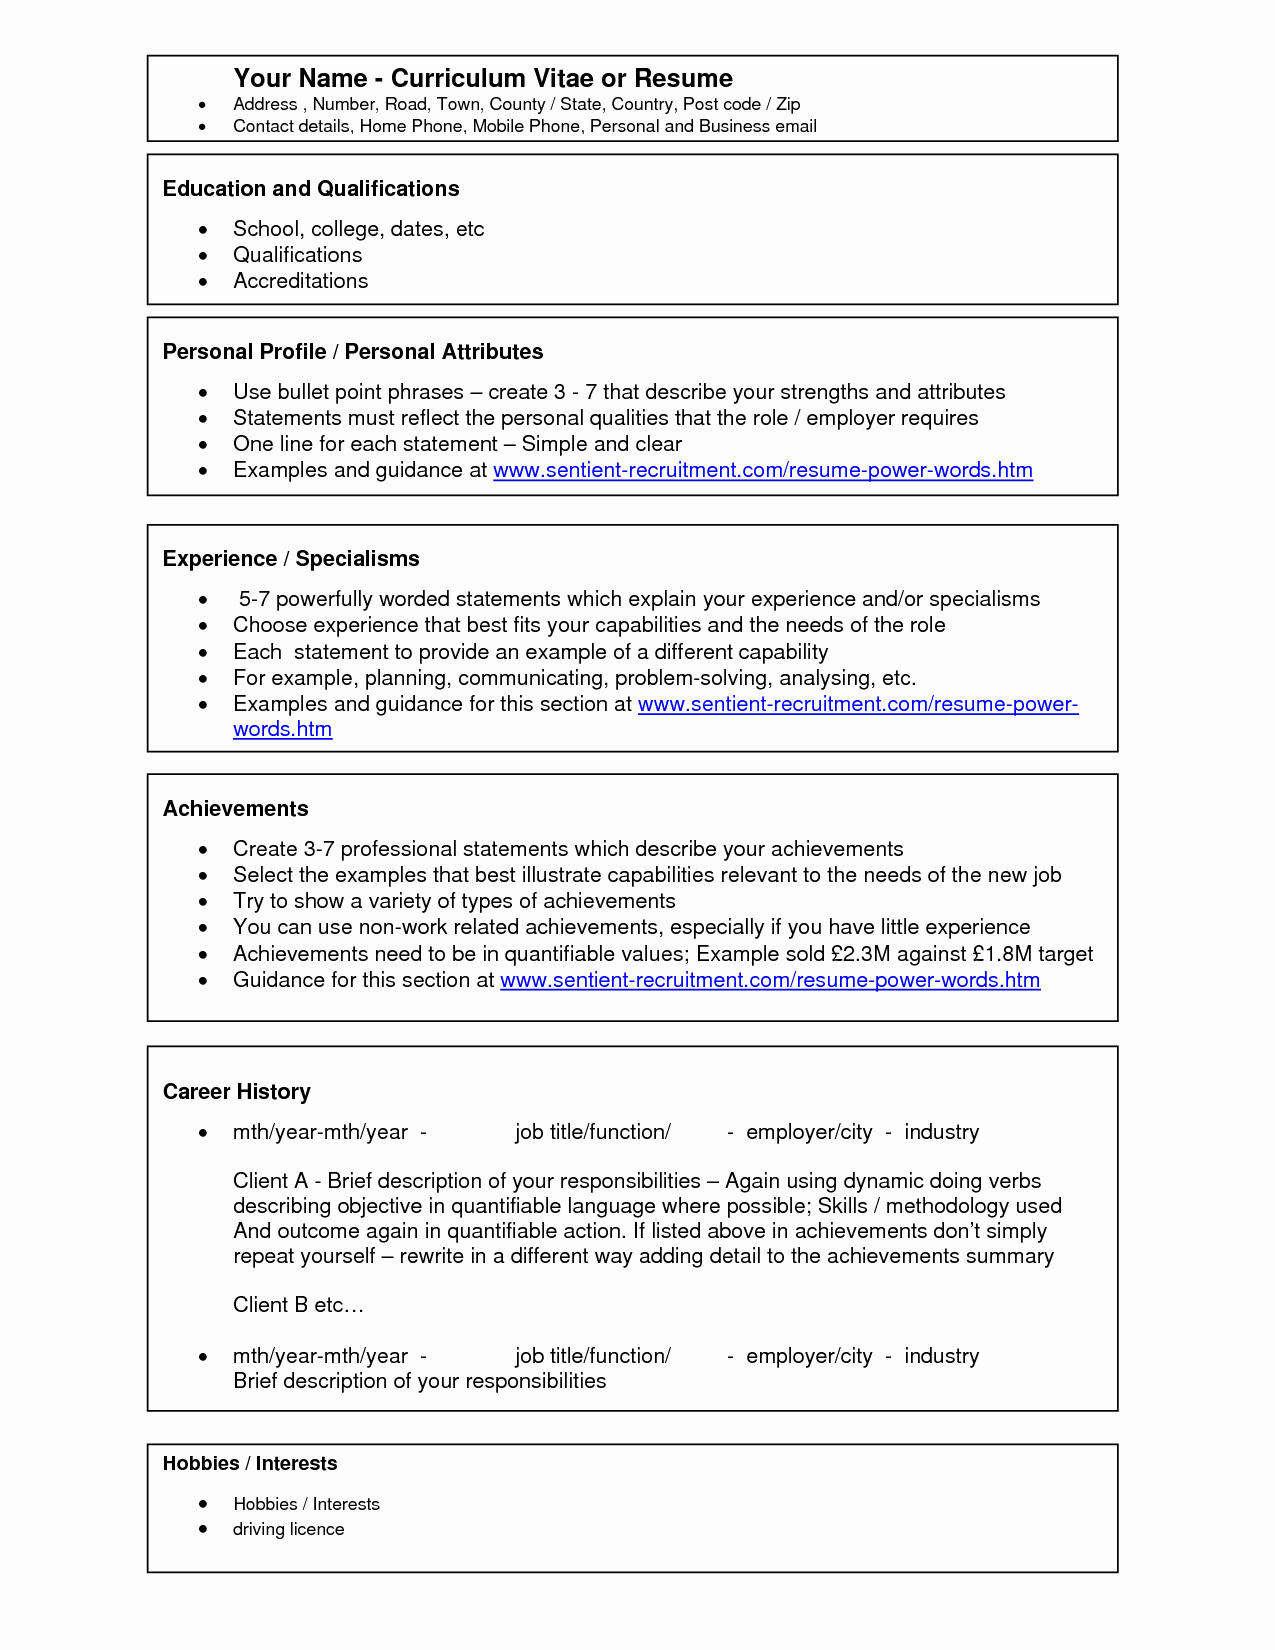 Download Resume Templates Microsoft Word New Pic Scope Of Work Template